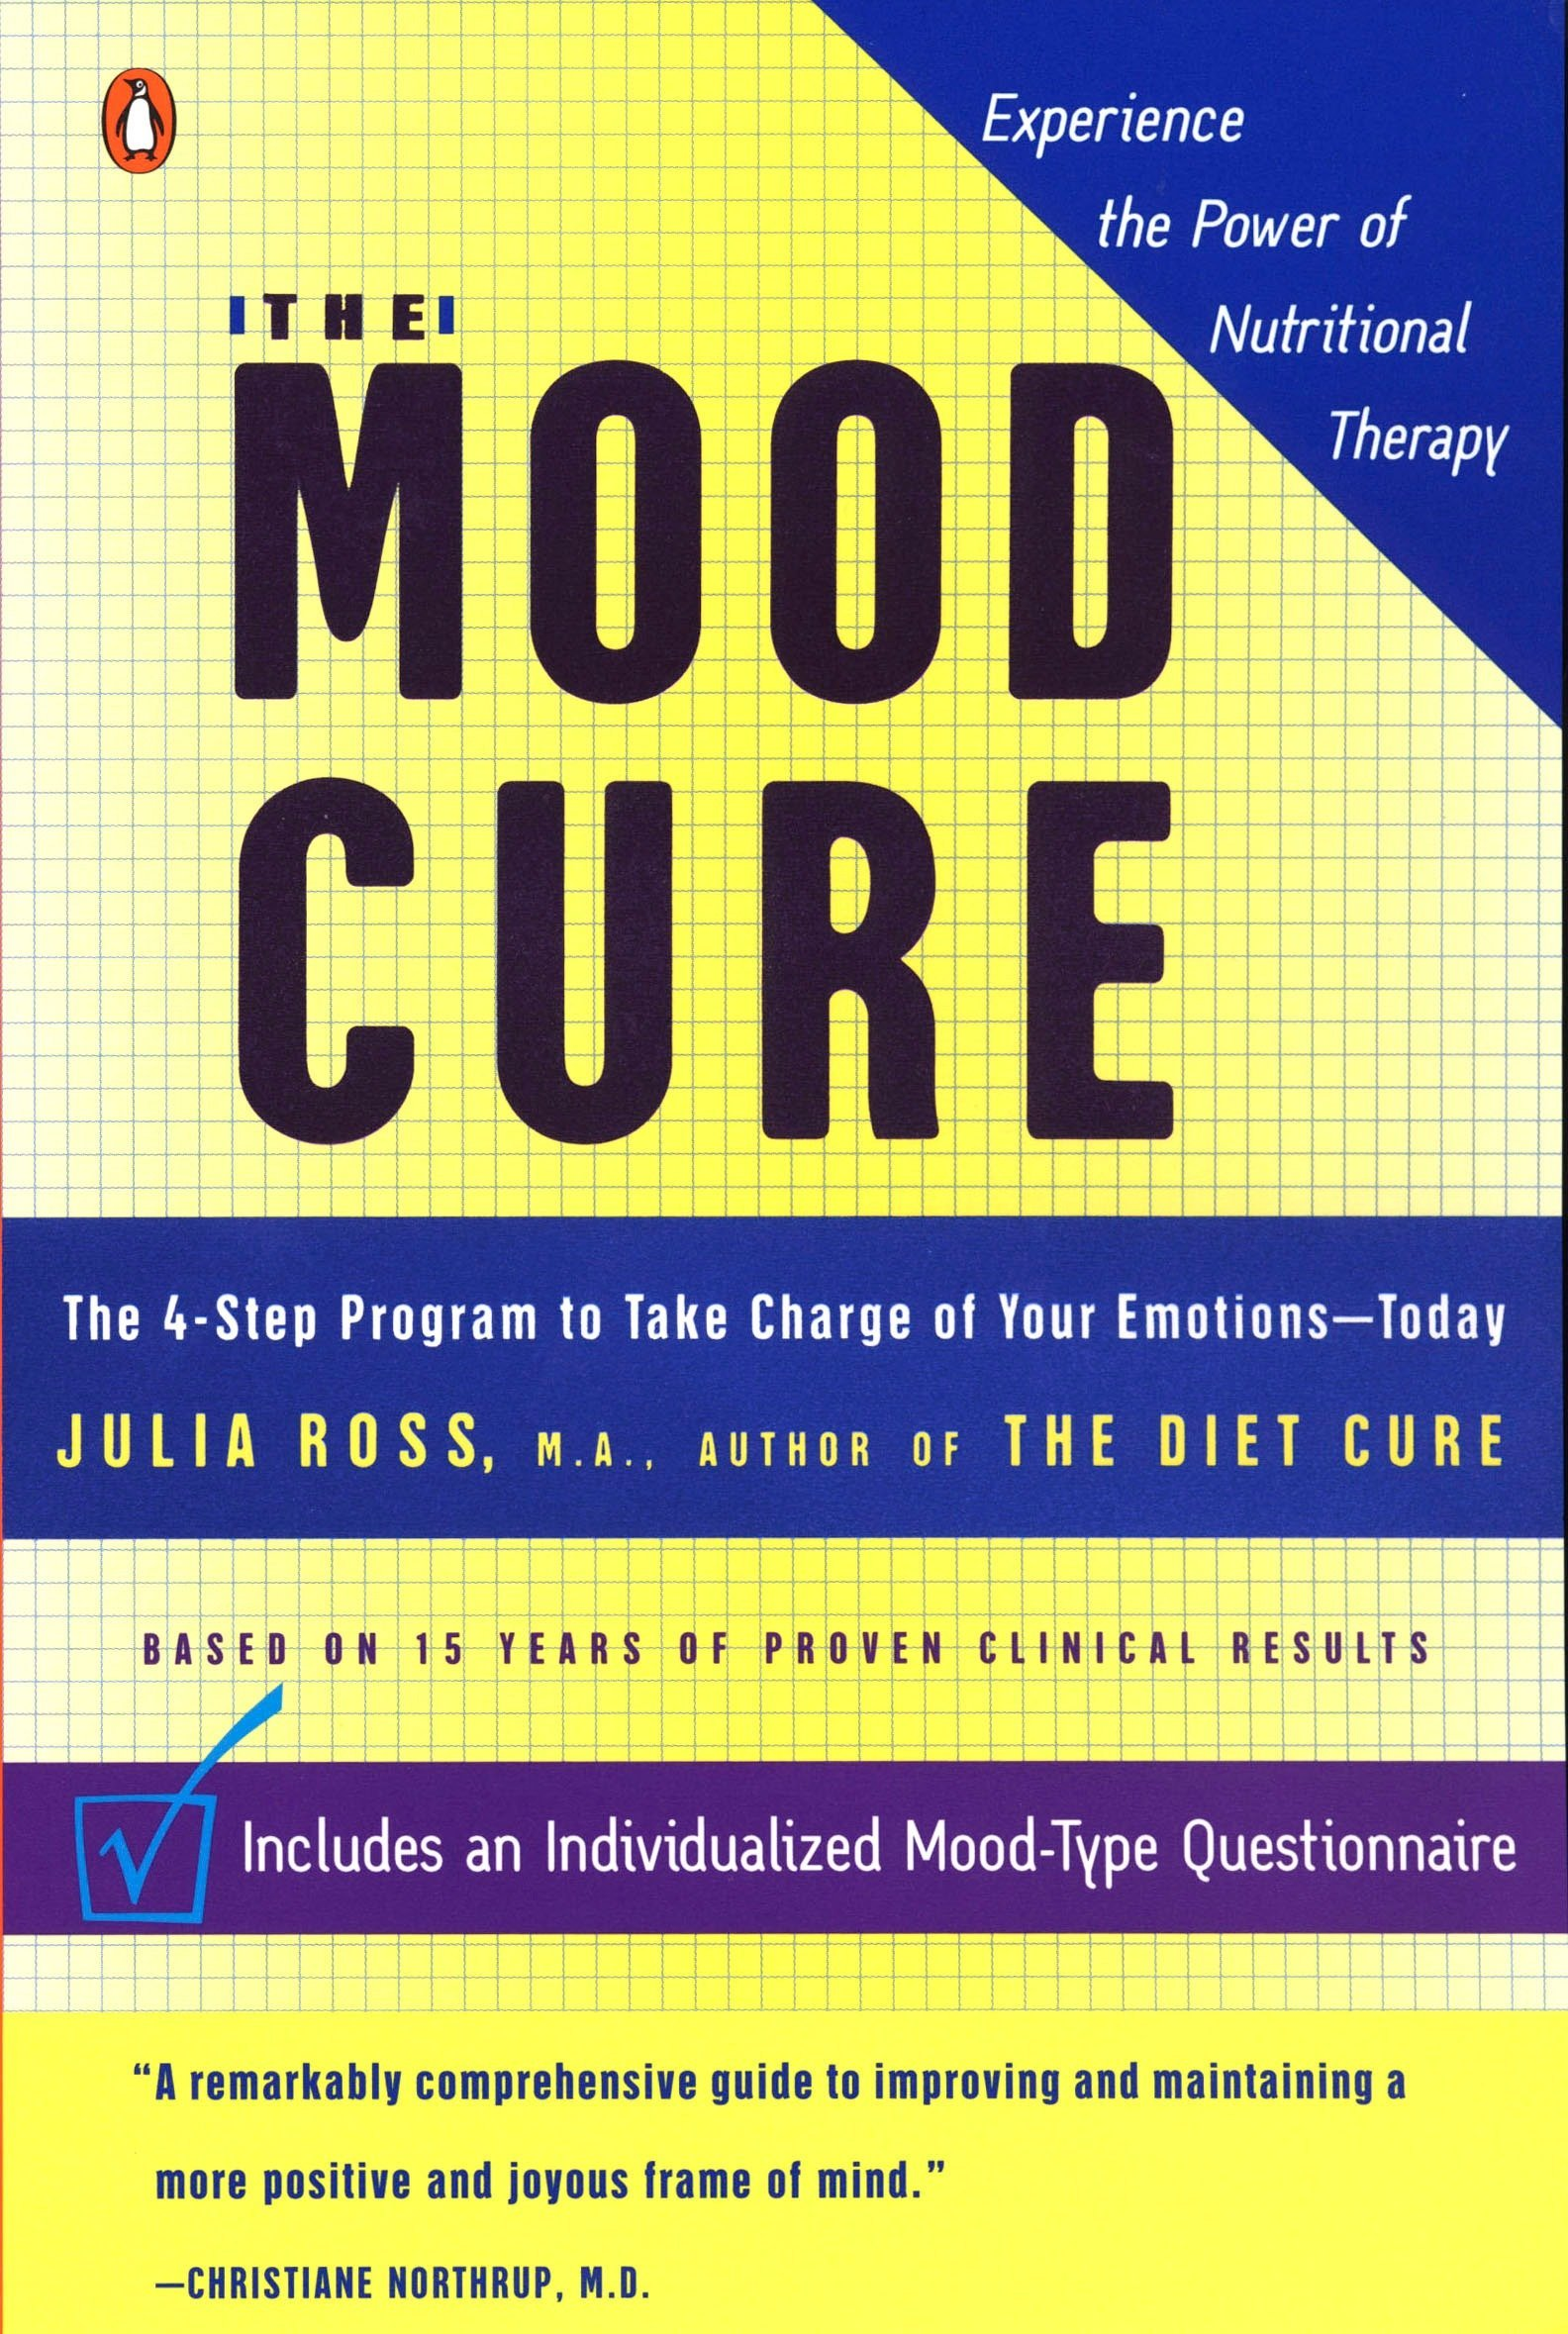 The Mood Cure: The 4-Step Program to Take Charge of Your Emotions--Today: Amazon.es: Julia Ross: Libros en idiomas extranjeros